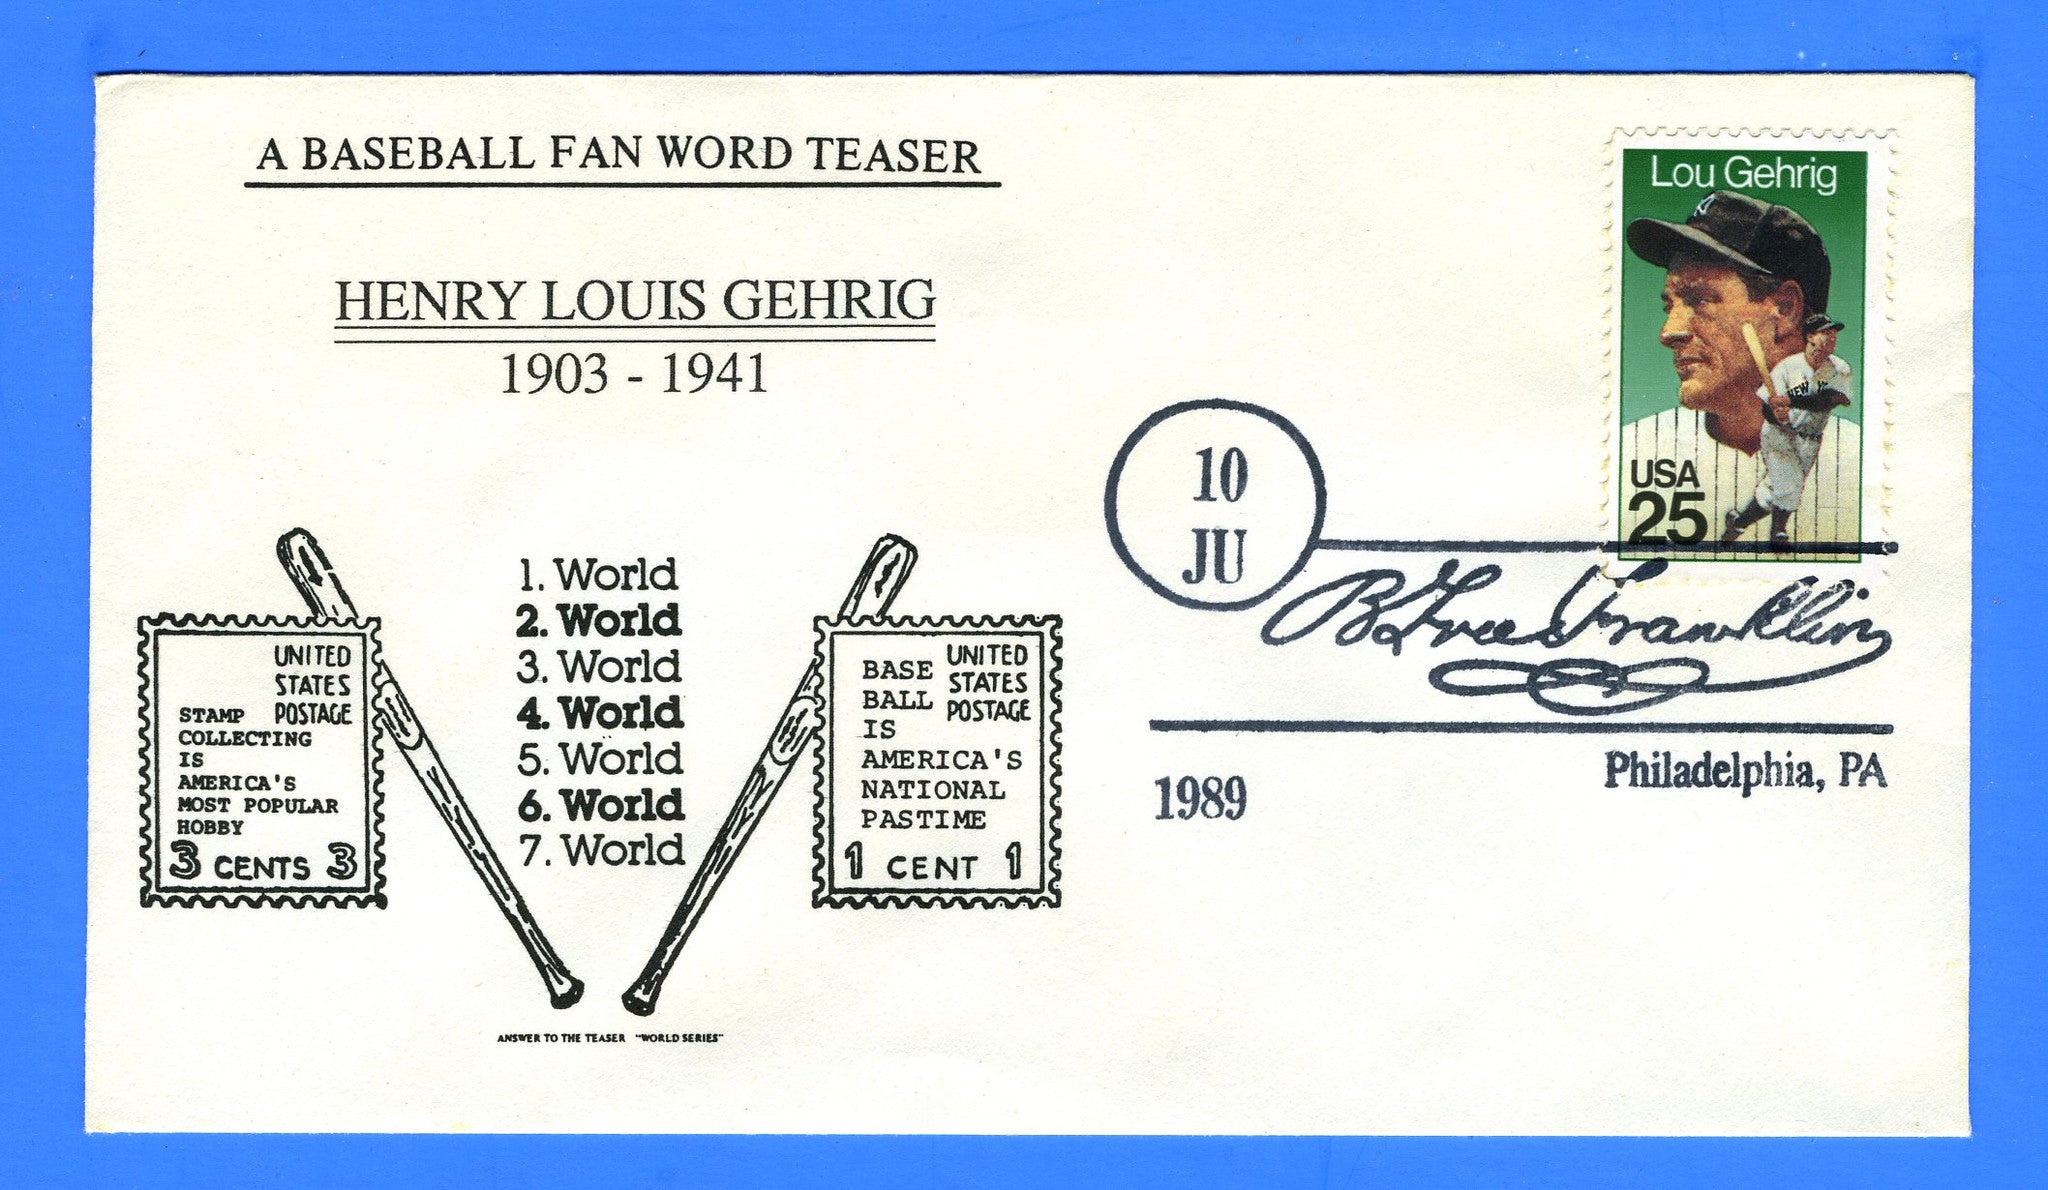 Scott 2417 25c Lou Gehrig First Day Cover - Not Attributed